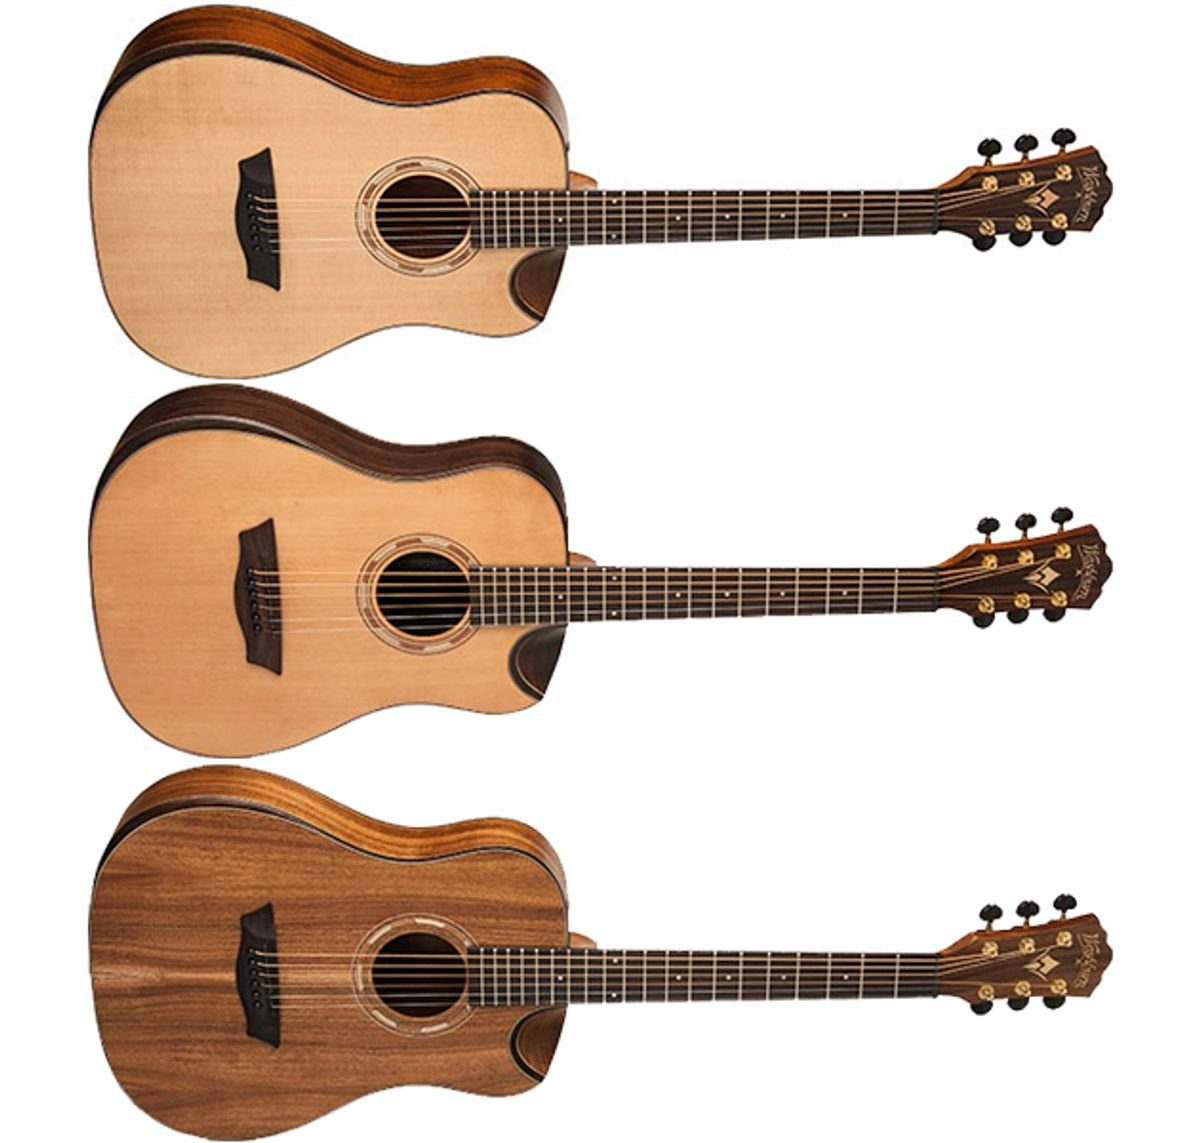 Washburn Guitars Announces Expansion of Comfort Series